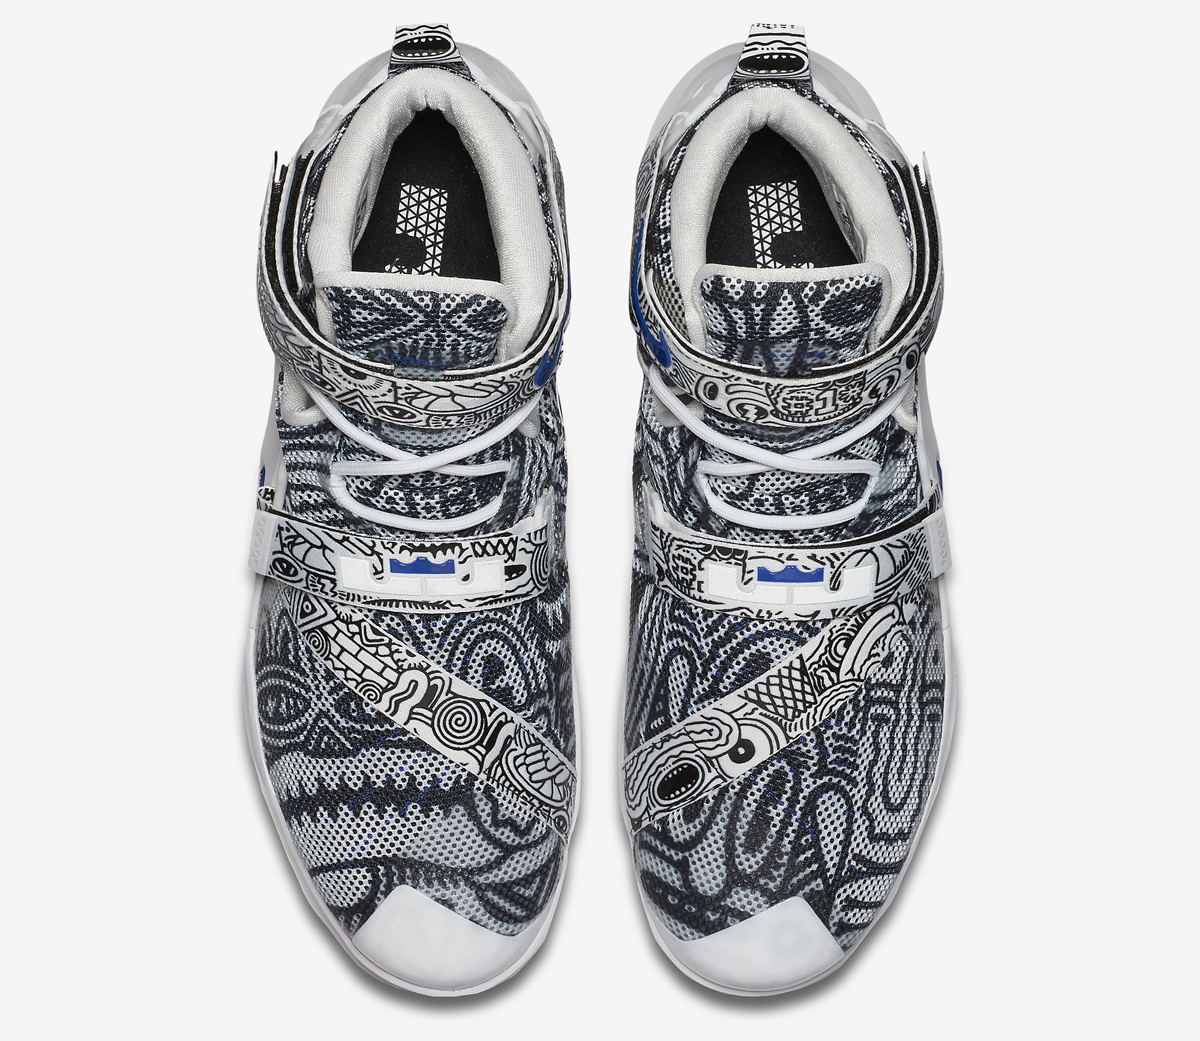 c60475b4d0aa7 new zealand freegums nike lebron soldier 9 4be38 f93d3  wholesale the  latest freegums x nike lebrons just released sole collector 1cfb0 efd8f